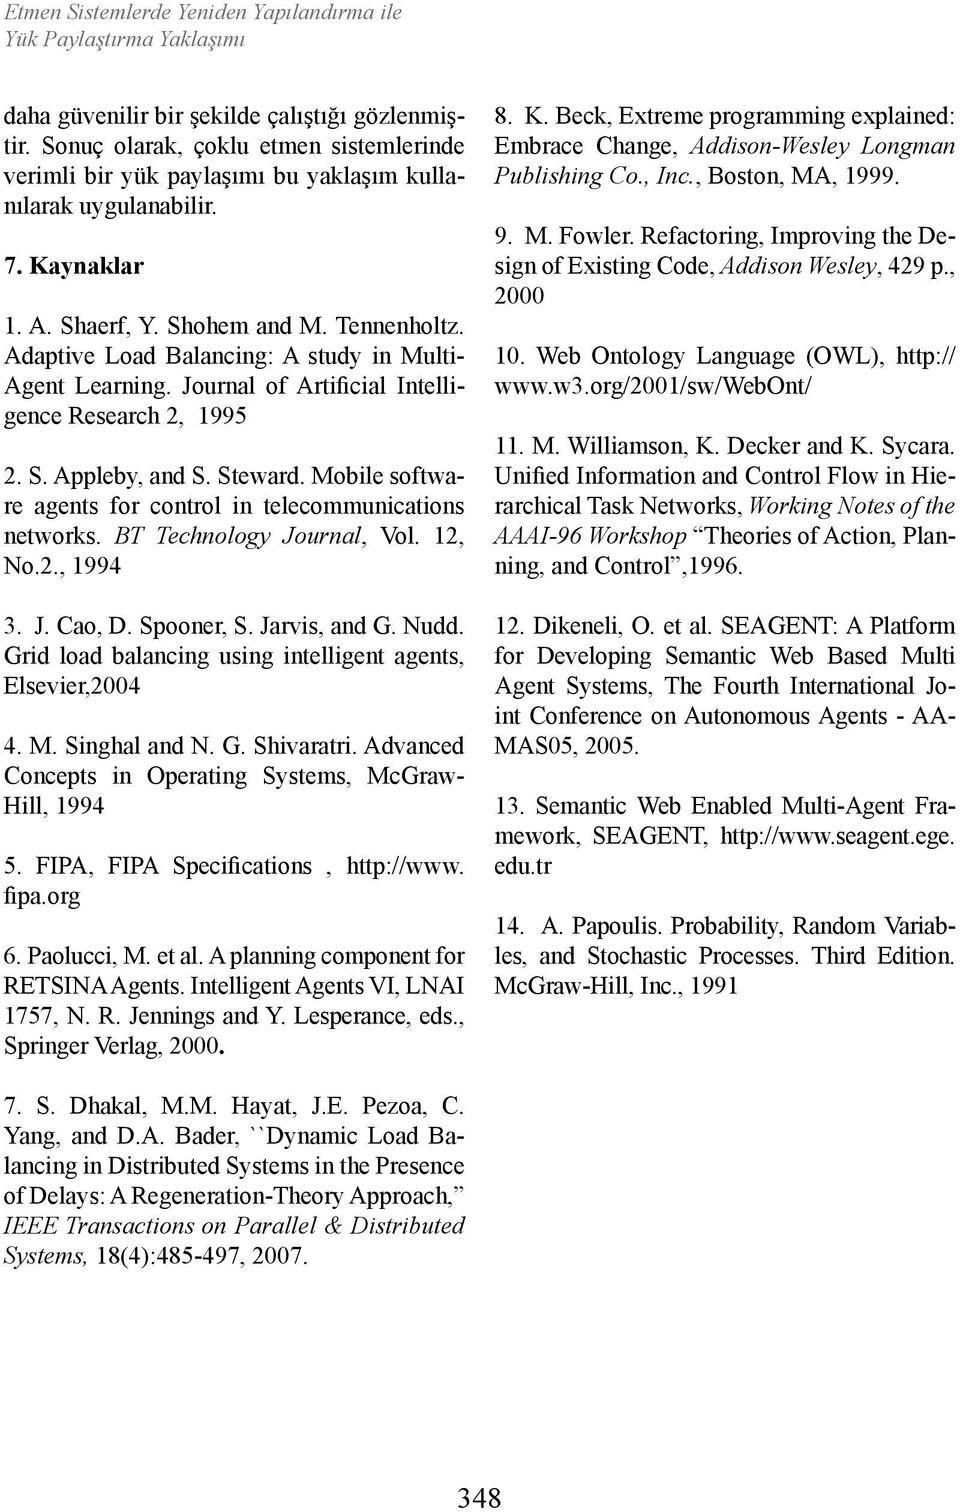 Mobile software agents for control in telecommunications networks. BT Technology Journal, Vol. 12, No.2., 1994 3. J. Cao, D. Spooner, S. Jarvis, and G. Nudd.